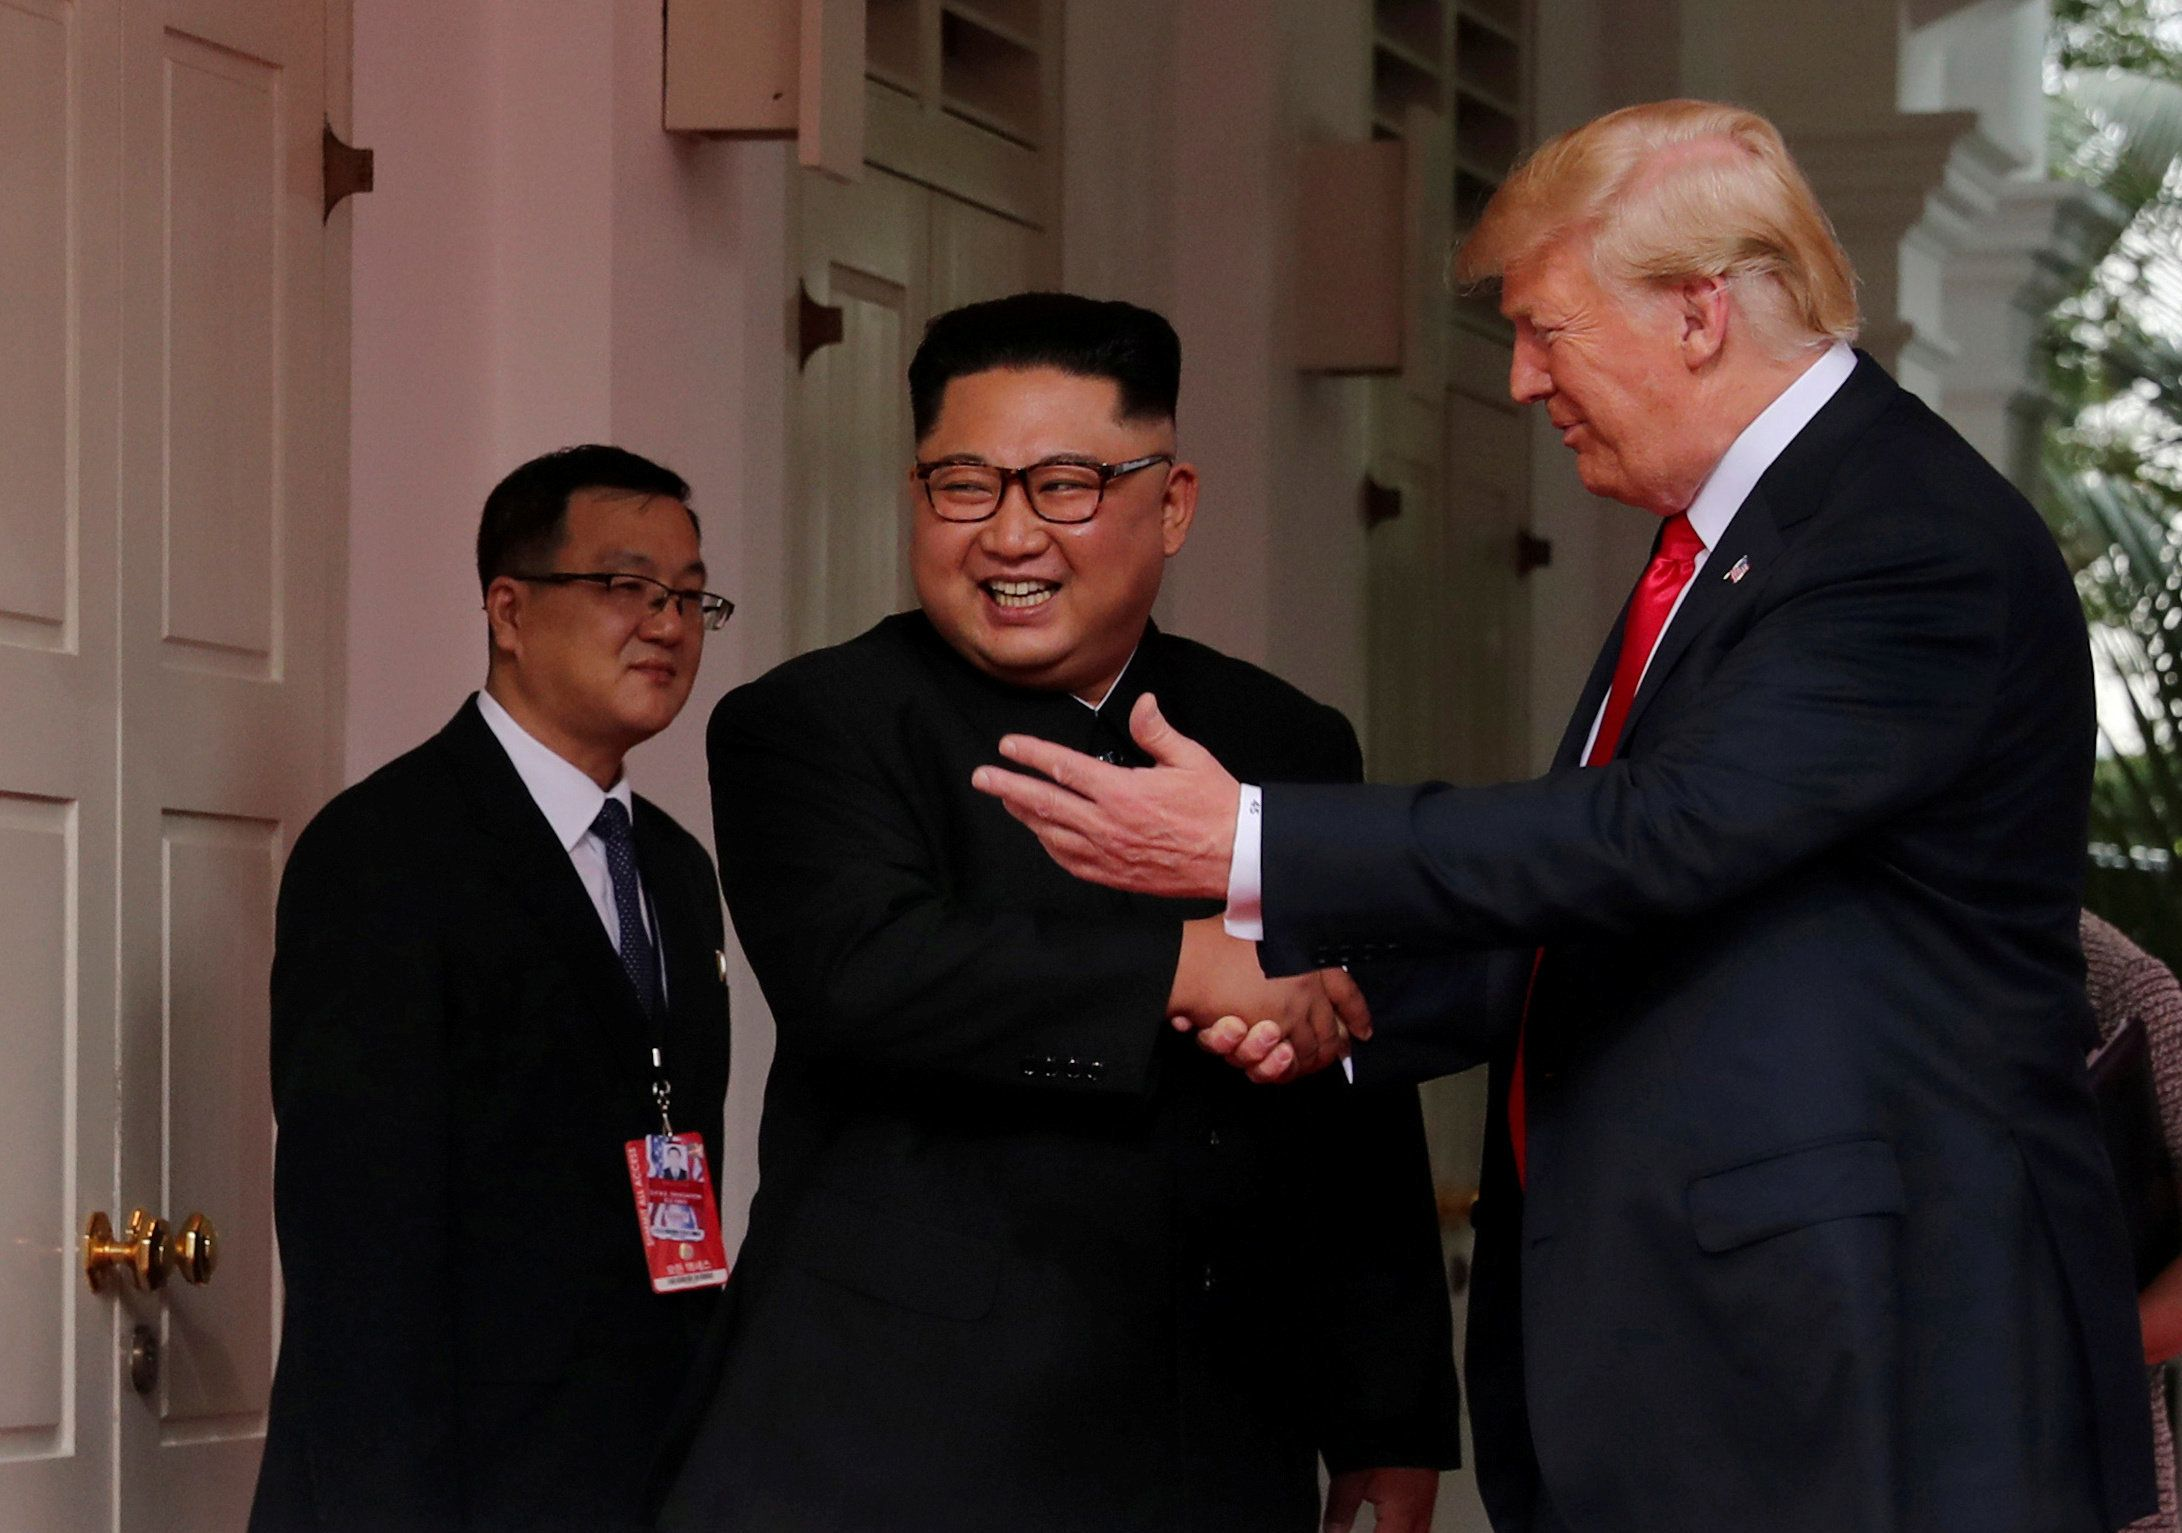 What the document signed by Donald Trump and Kim Jong Un says